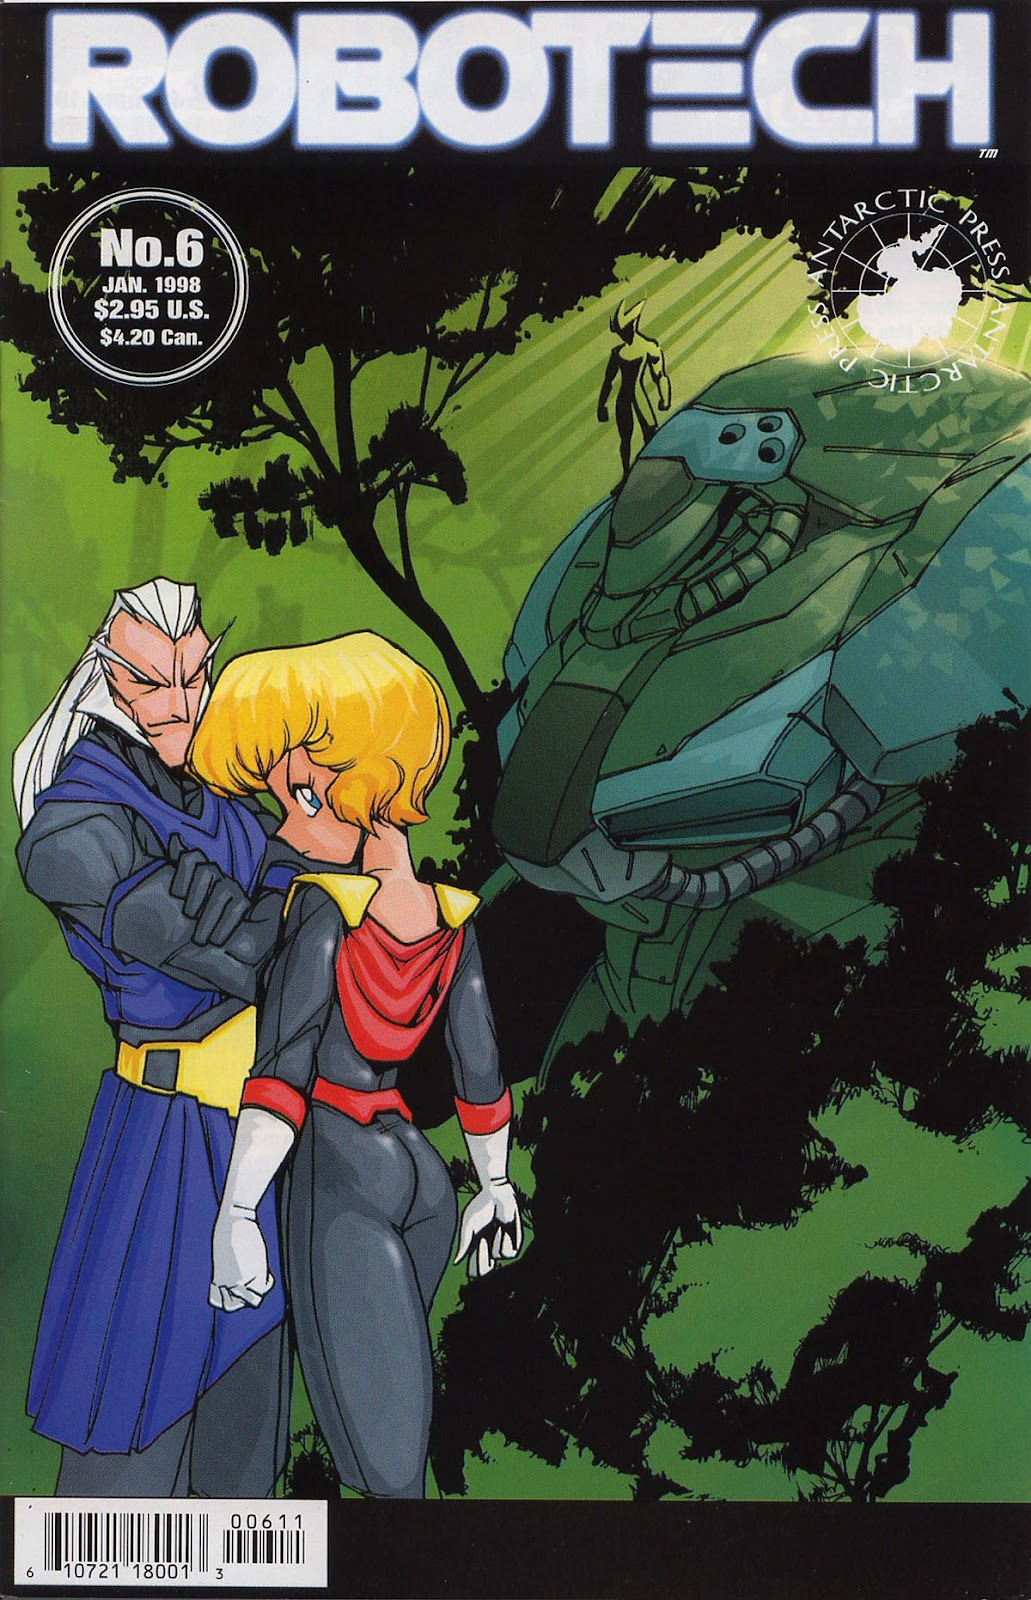 Robotech (1997) issue 6 - Page 1